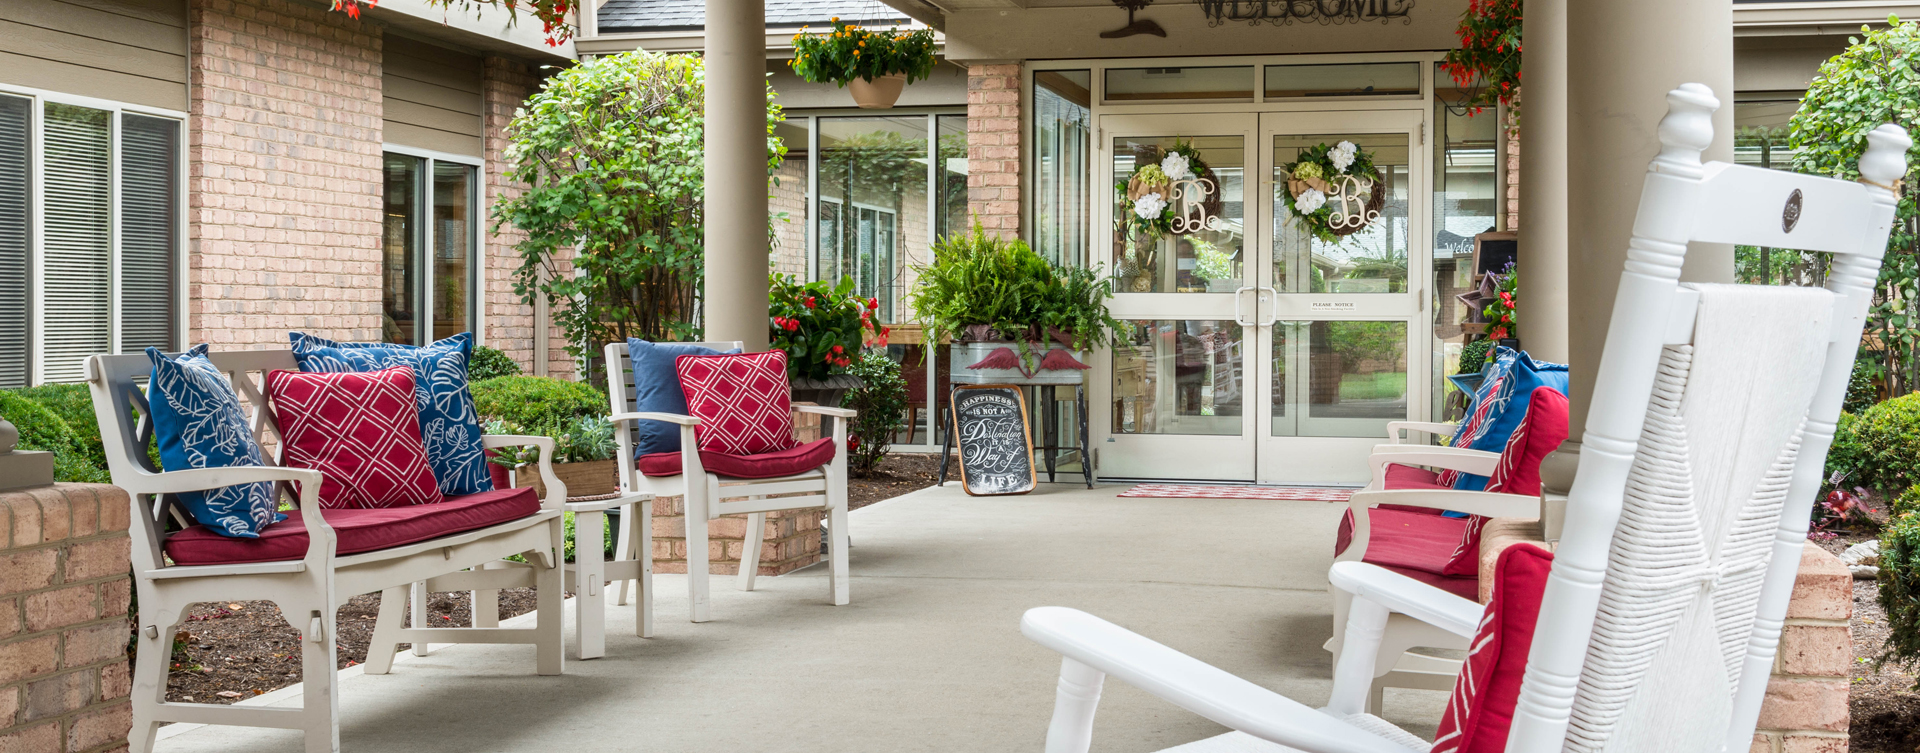 Enjoy conversations with friends on the porch at Bickford of Middletown